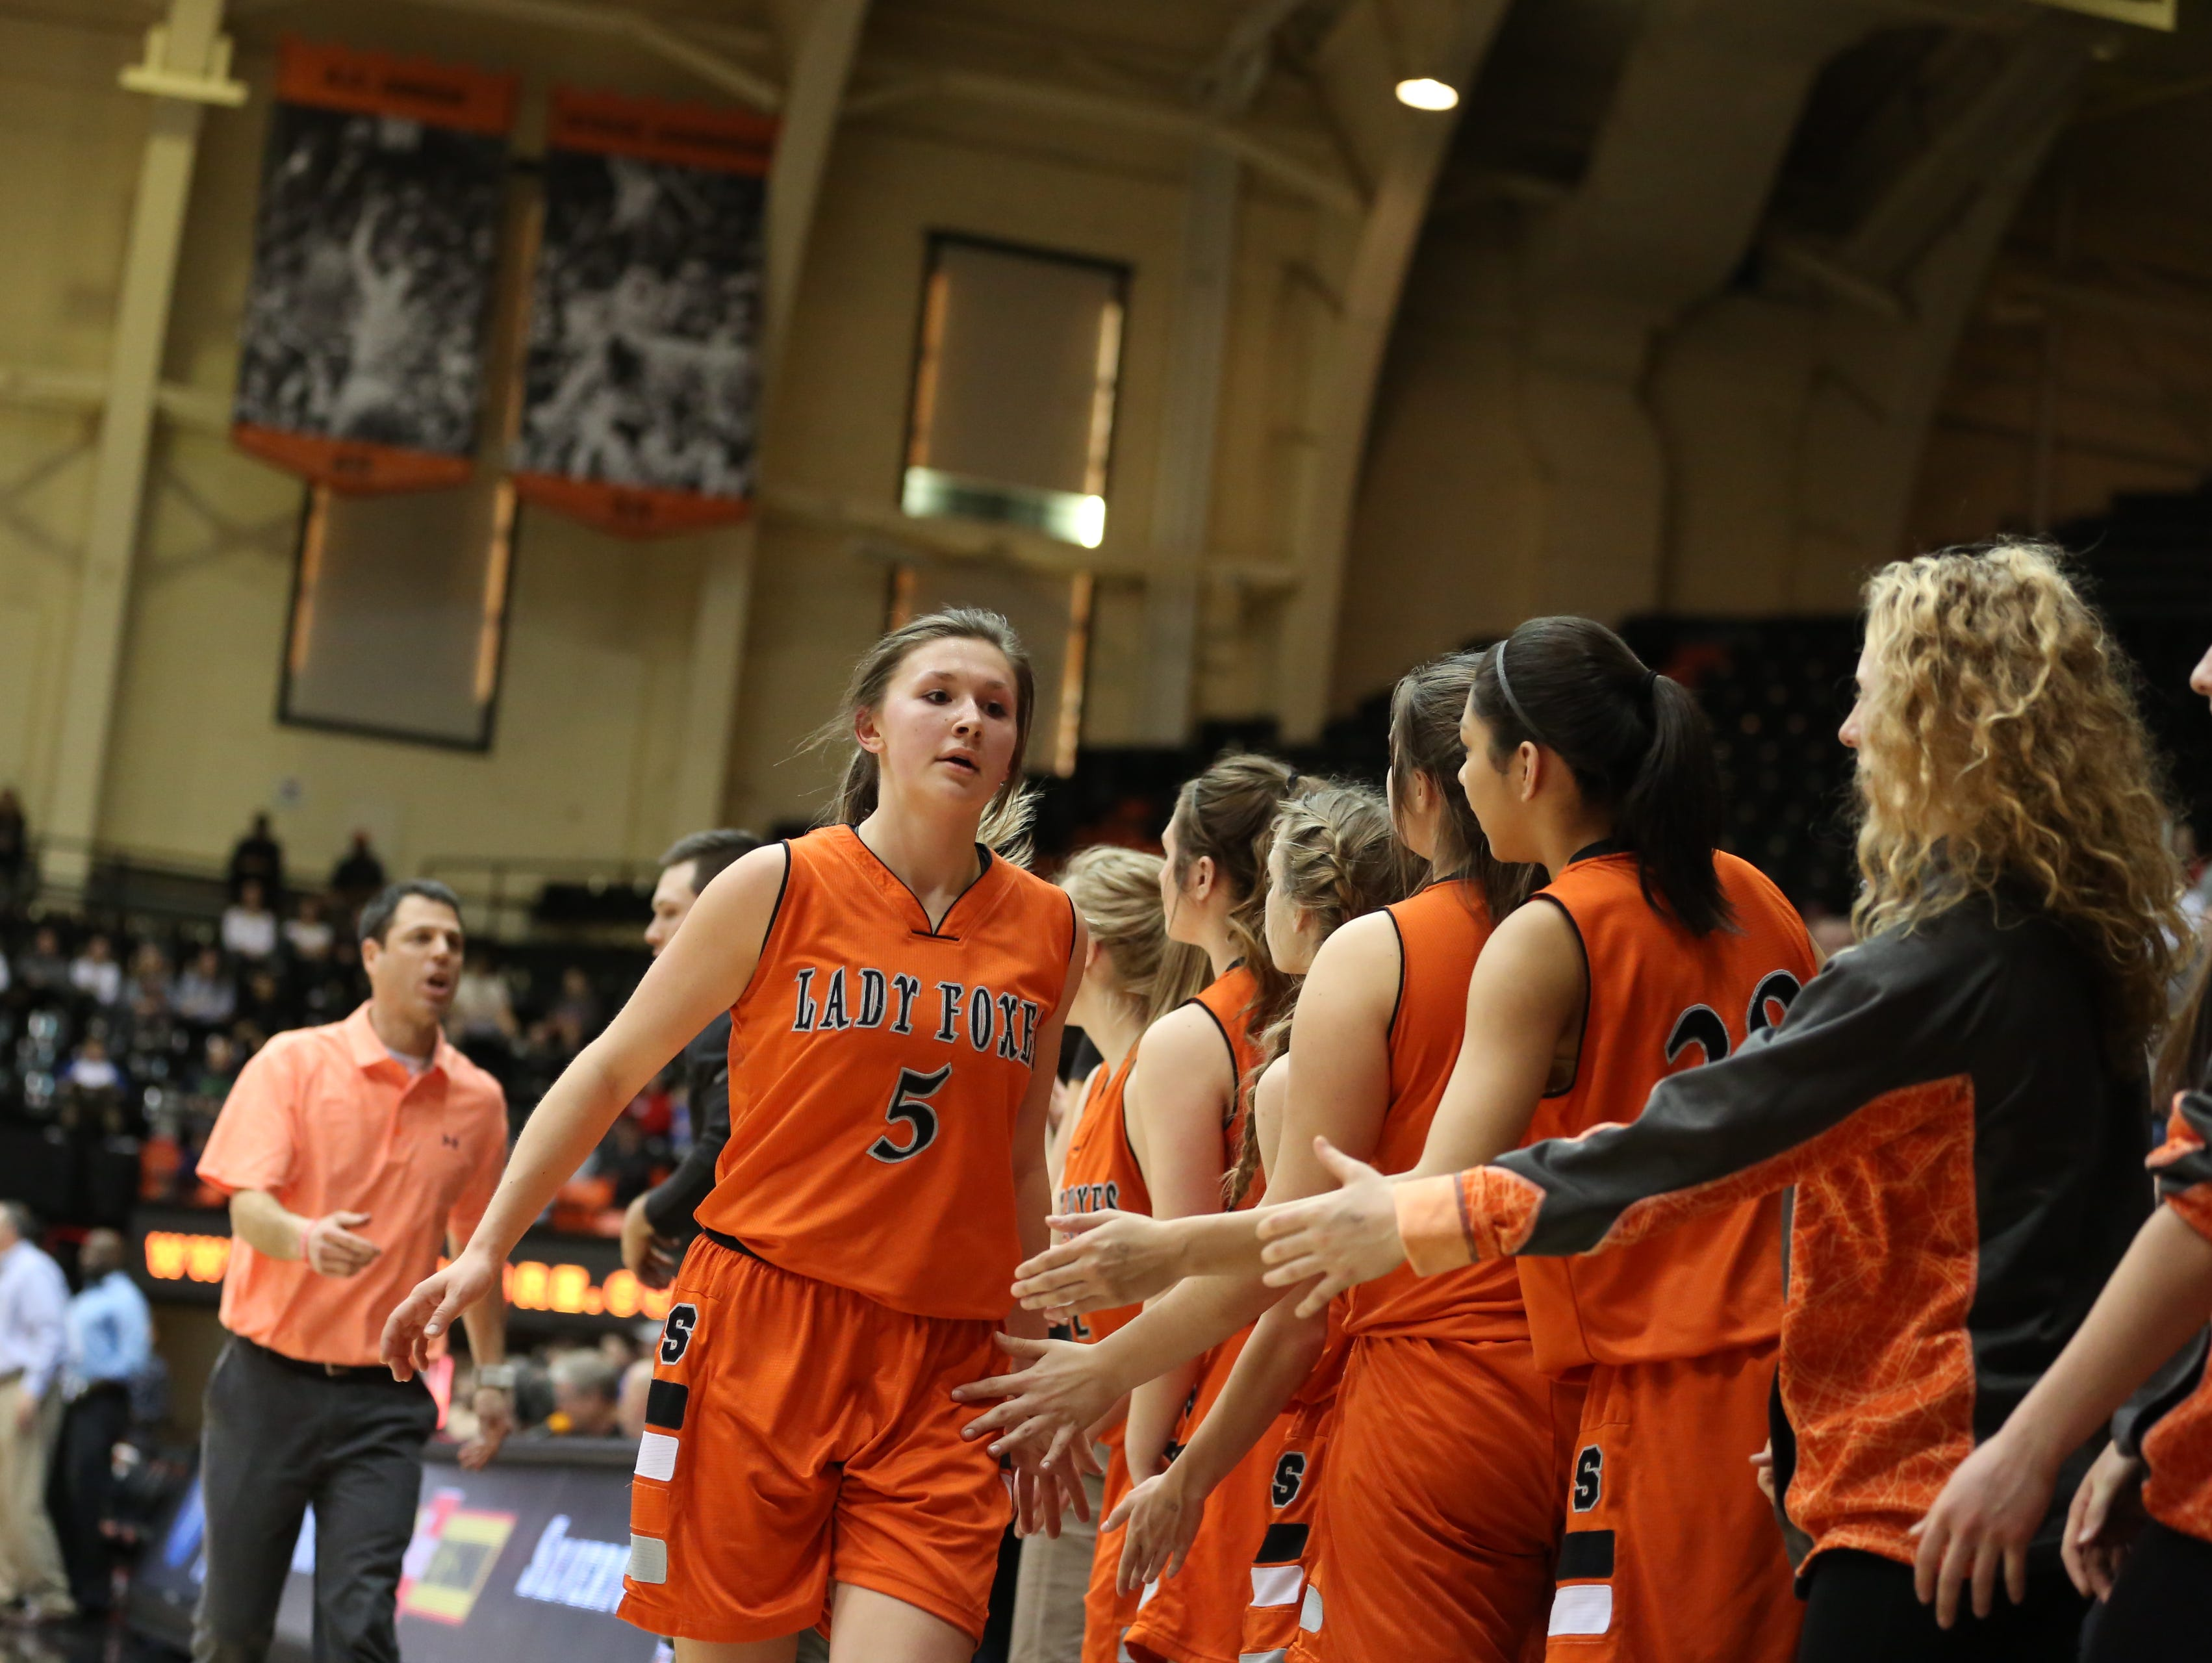 Silverton's Kayce McLaughlin and the Foxes fall to La Salle 42-28 in the OSAA Class 5A state championship on Friday, March 10, 2017, at Gill Coliseum in Corvallis.